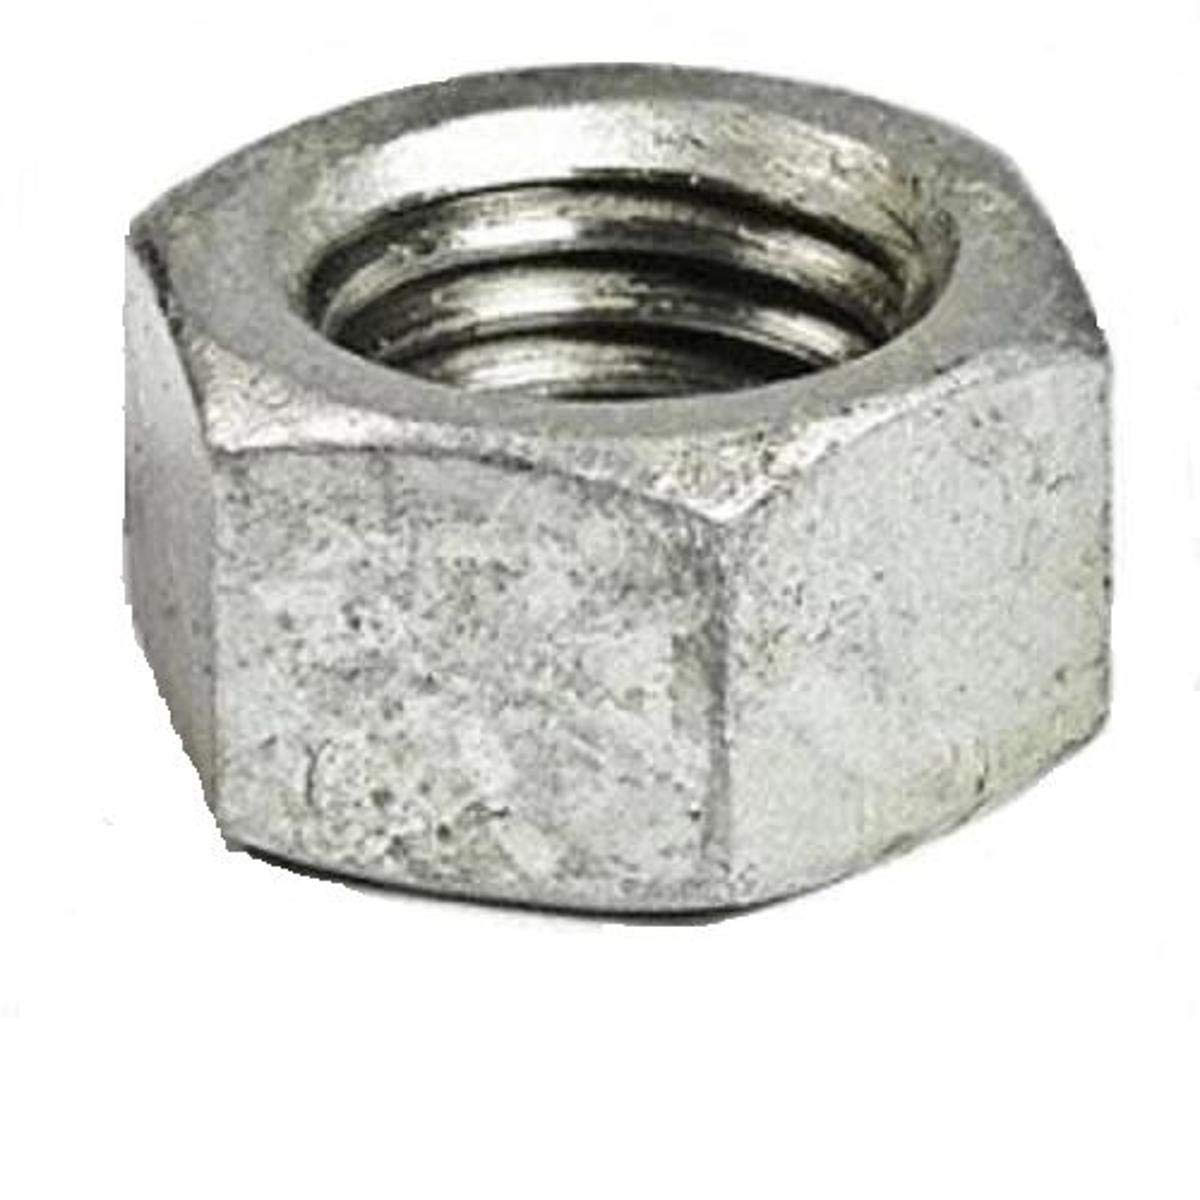 Pack of 100 Small Parts FSC38HNSG Low-Strength Steel Hex Nut Grade 2 3//8-16 Thread Size